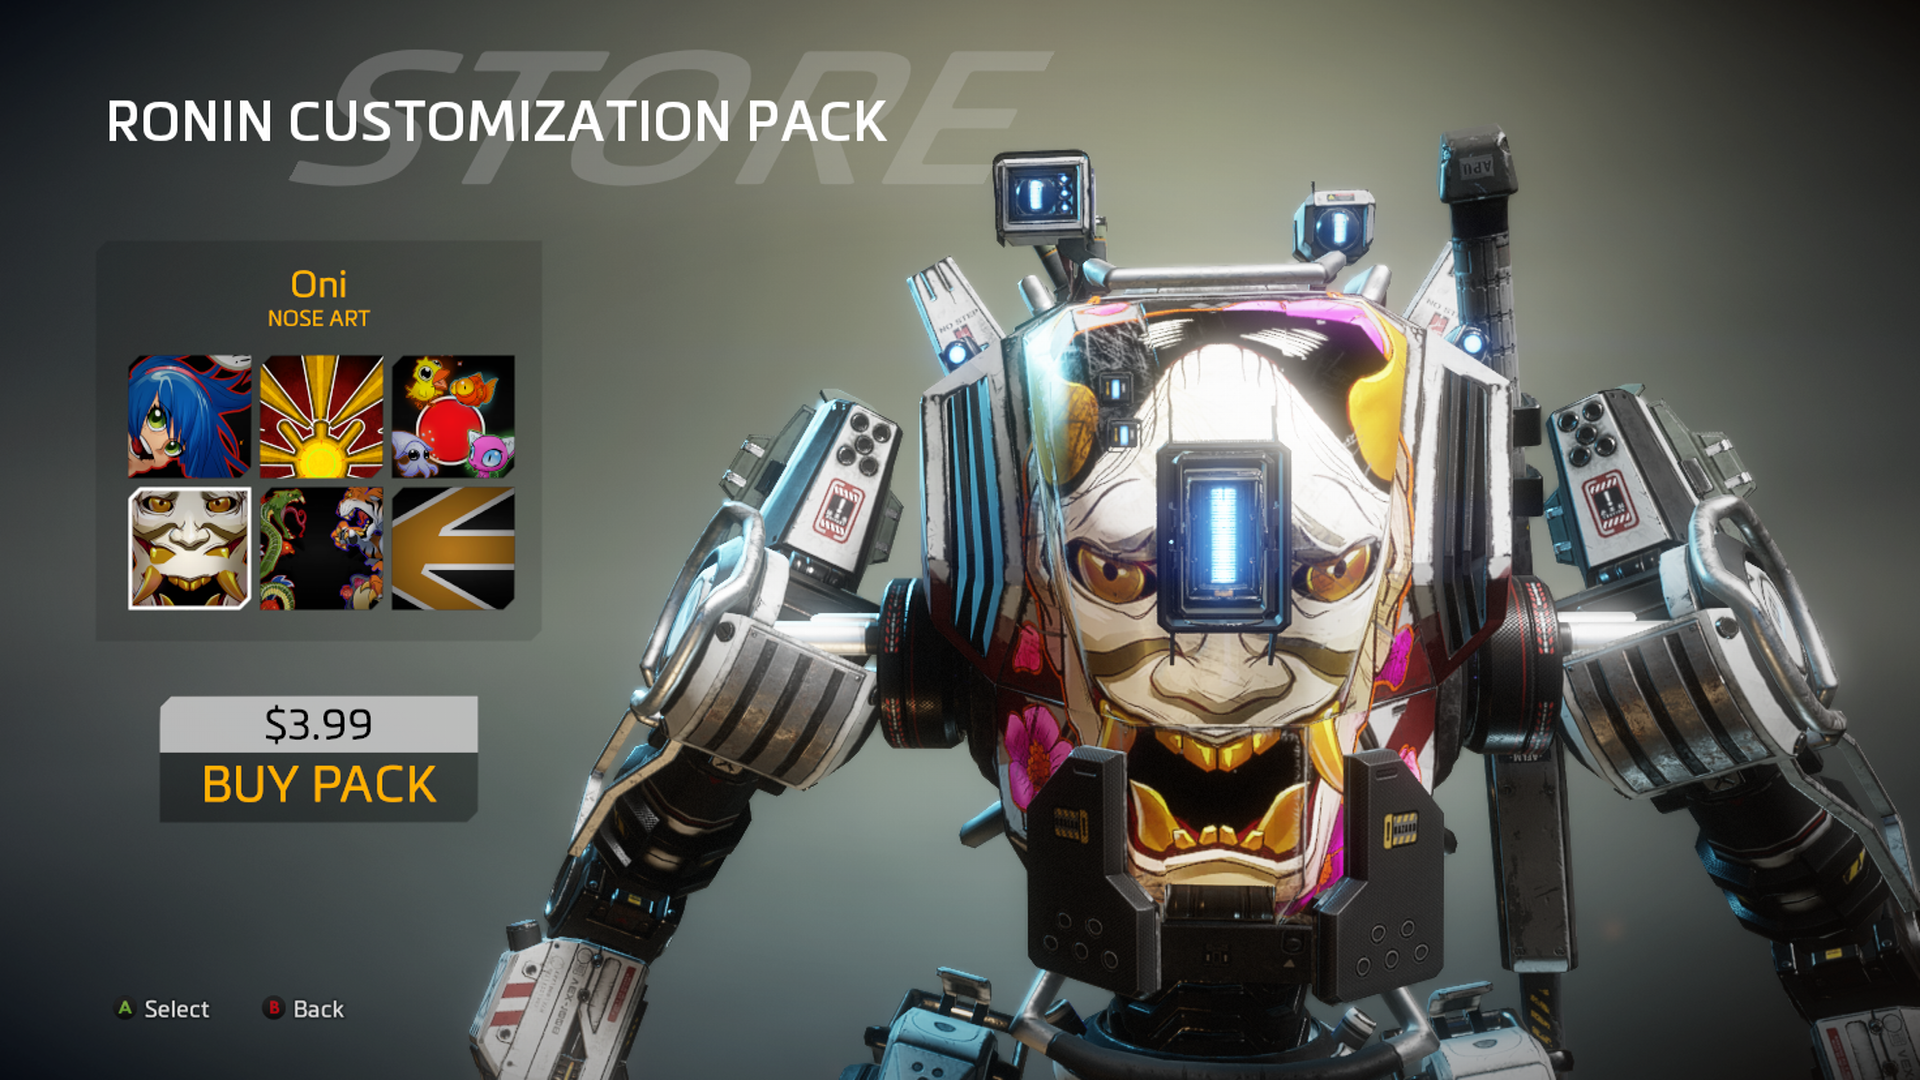 Ronin nose art: Oni | Titans: Mechs in Titanfall 2 in 2019